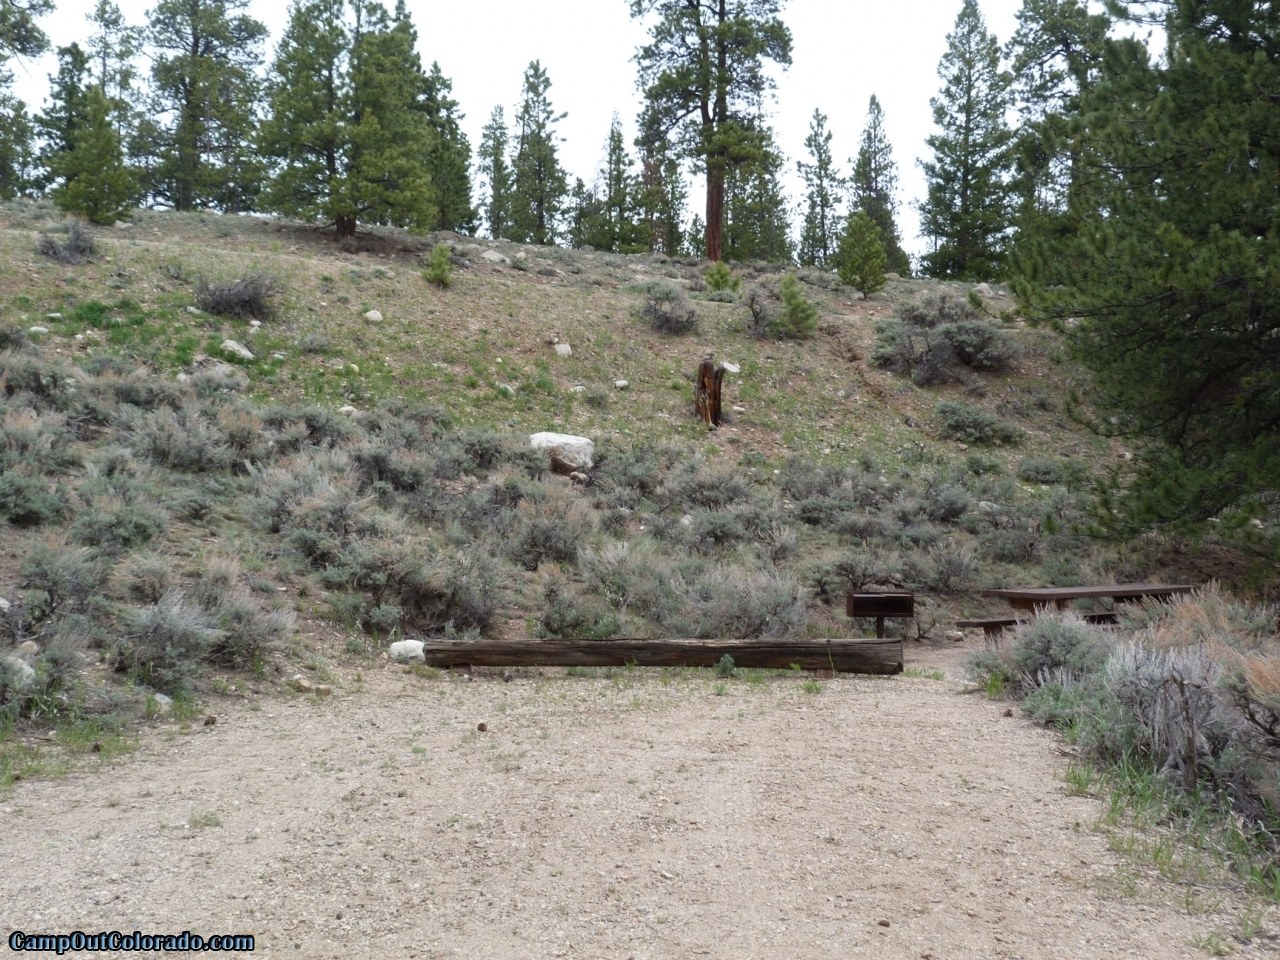 camp-out-colorado-lakeview-campground-hilly-campsite